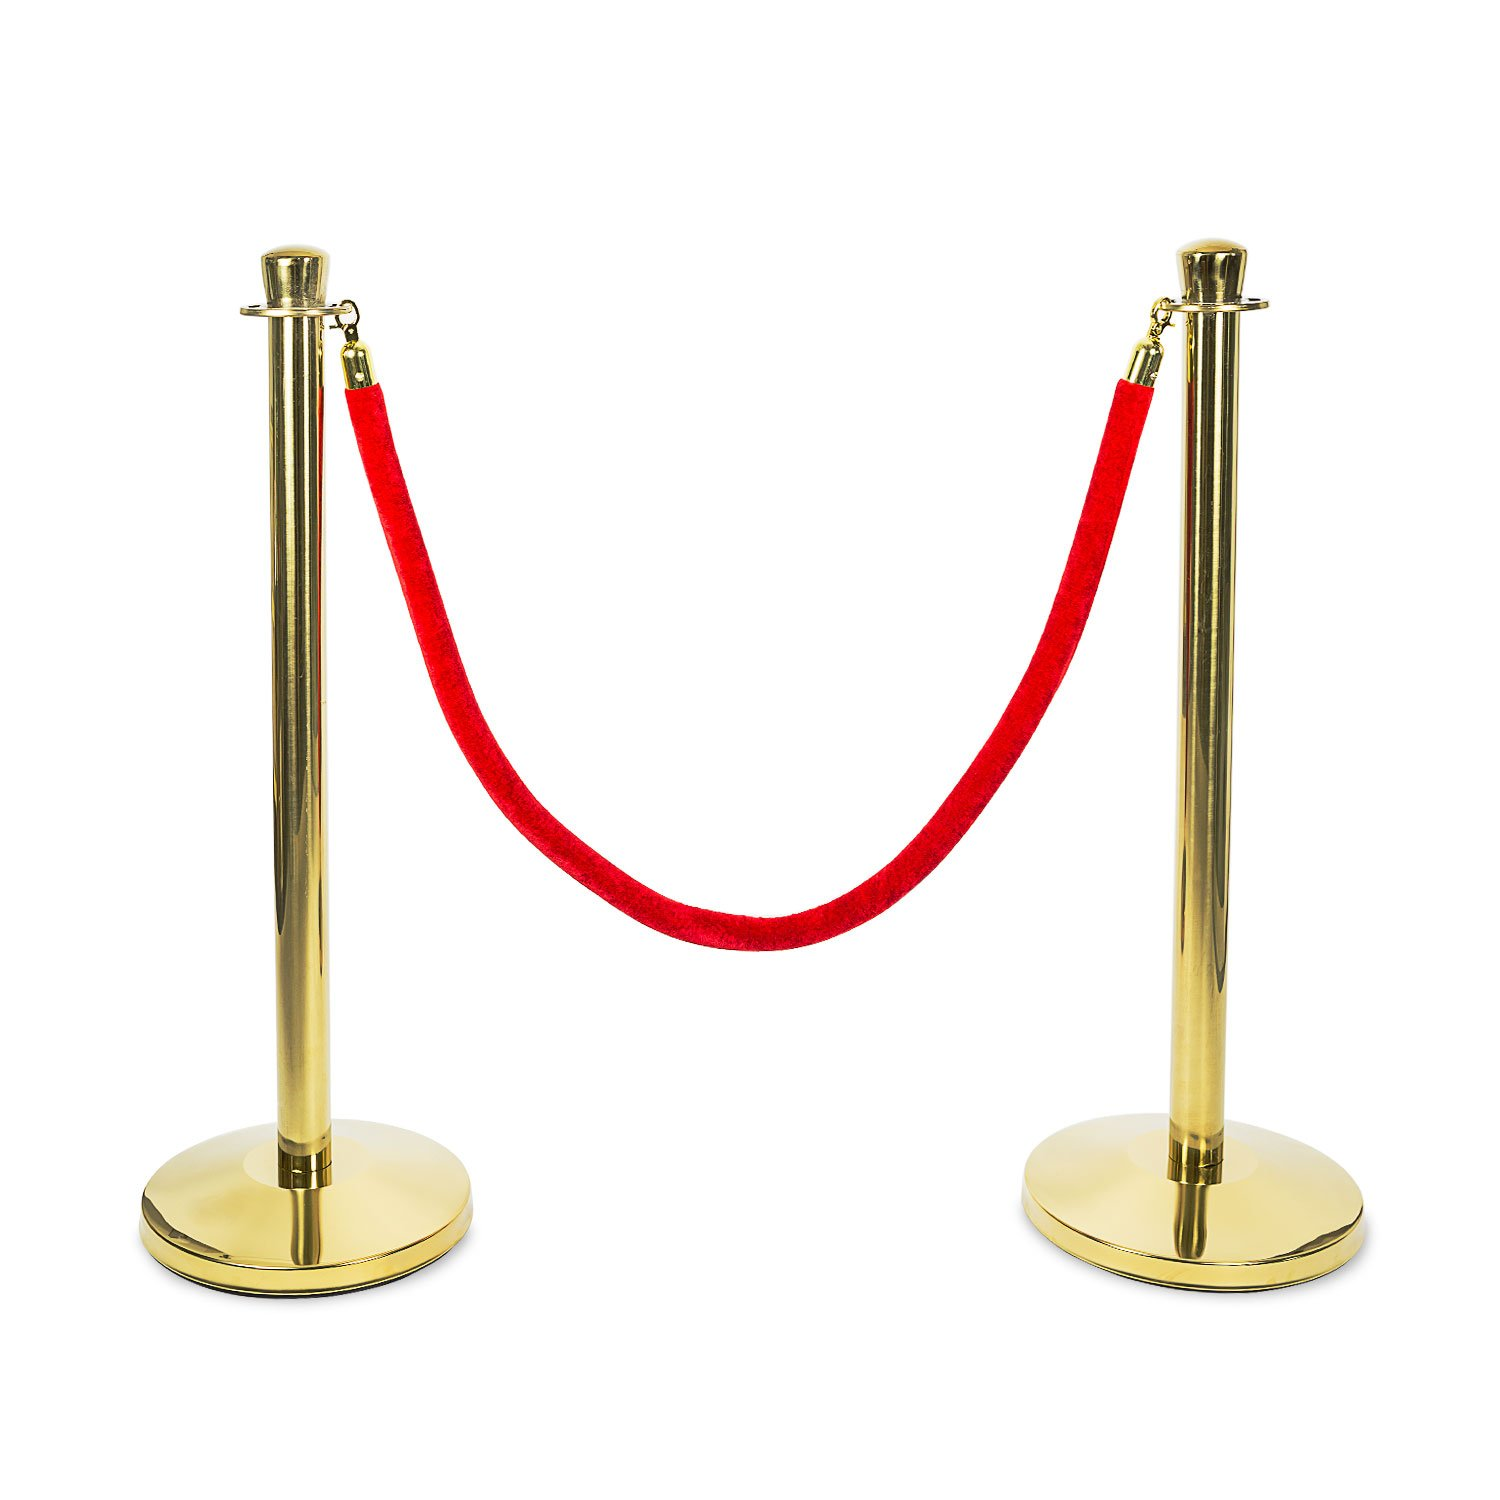 Source One Crowd Control Stanchion 38 Inches Tall Available in Gold & Silver Comes with Red Velvet Rope (1 Pack, Gold)